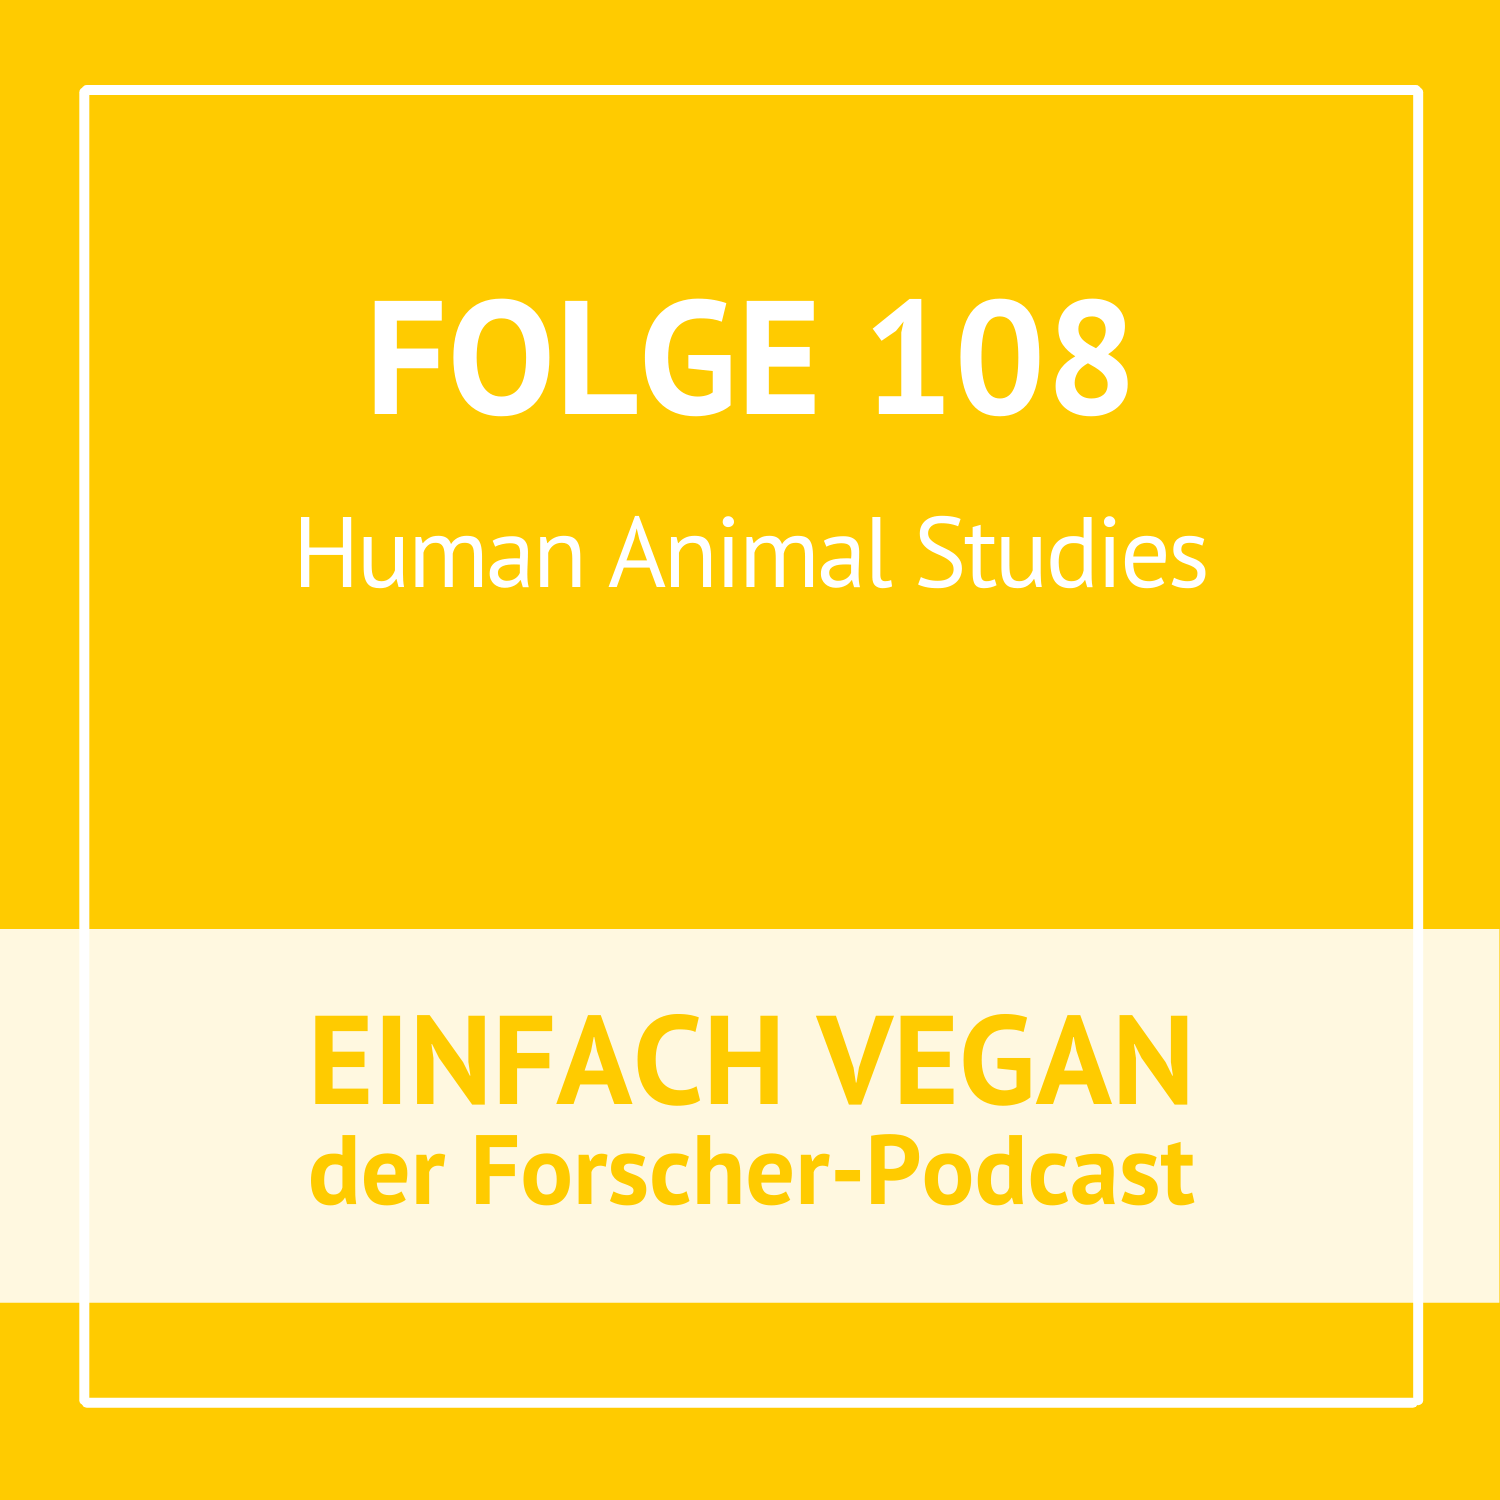 Folge 108 - Human Animal Studies